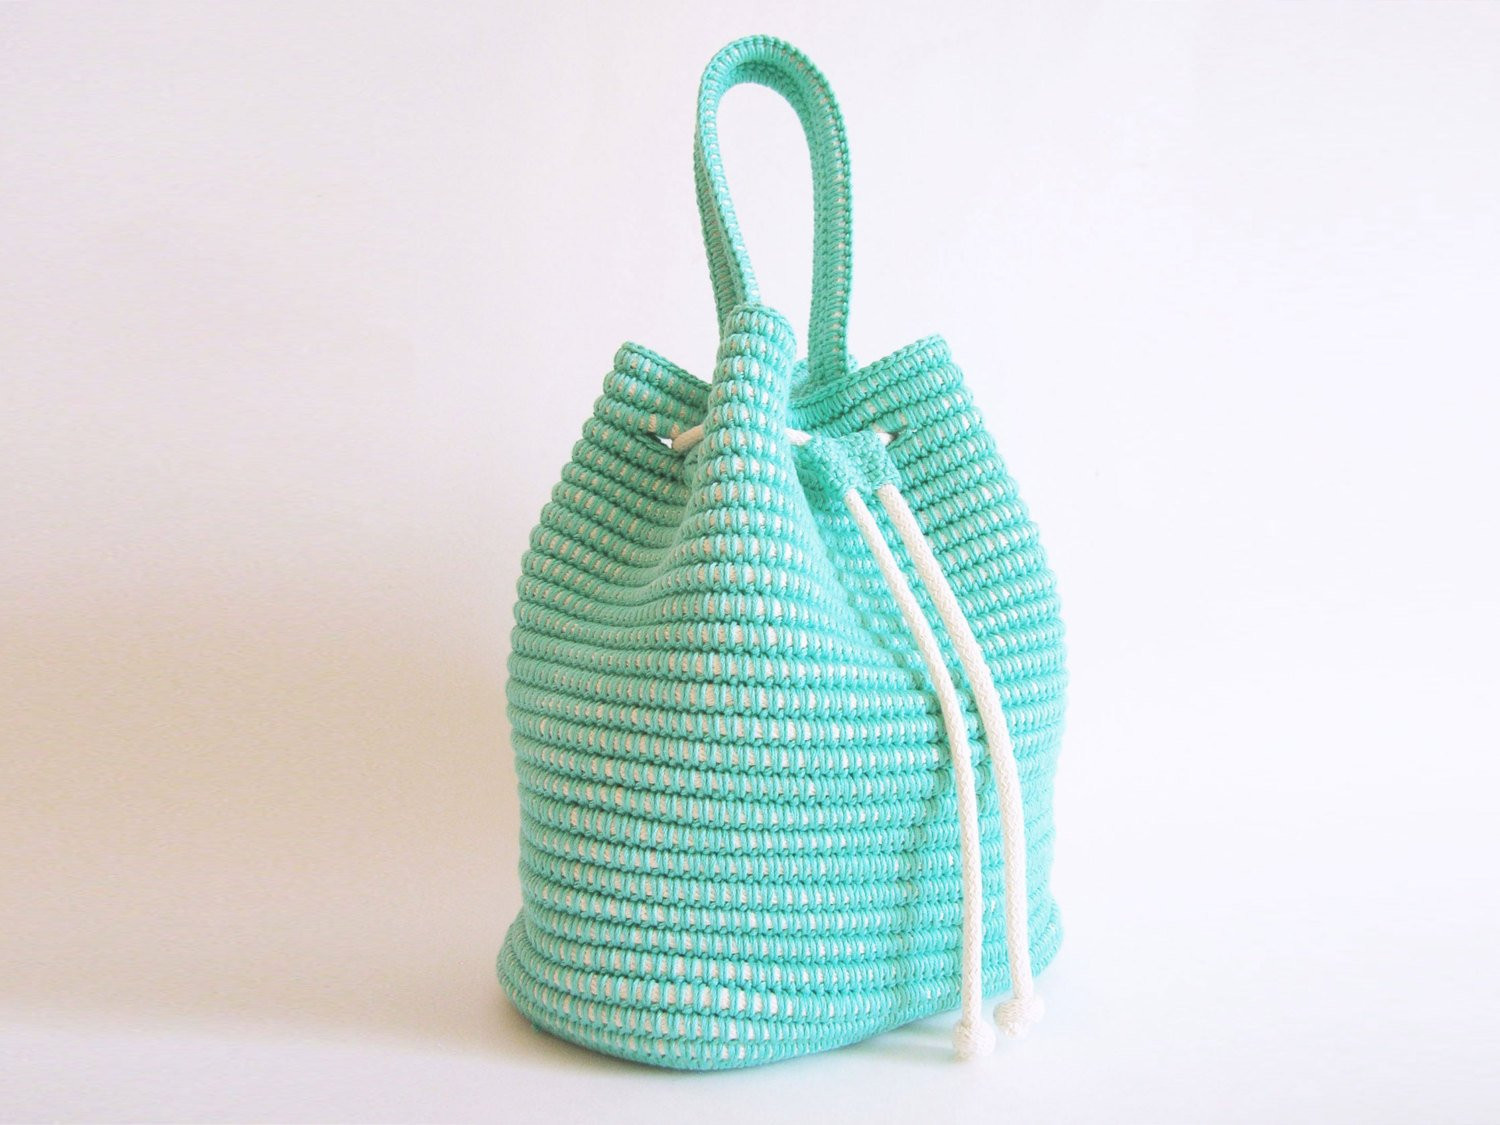 Crochet Draw String Bag Unique Crochet Pattern for A Drawstring Bag Practice Tapestry Of Awesome 42 Pictures Crochet Draw String Bag